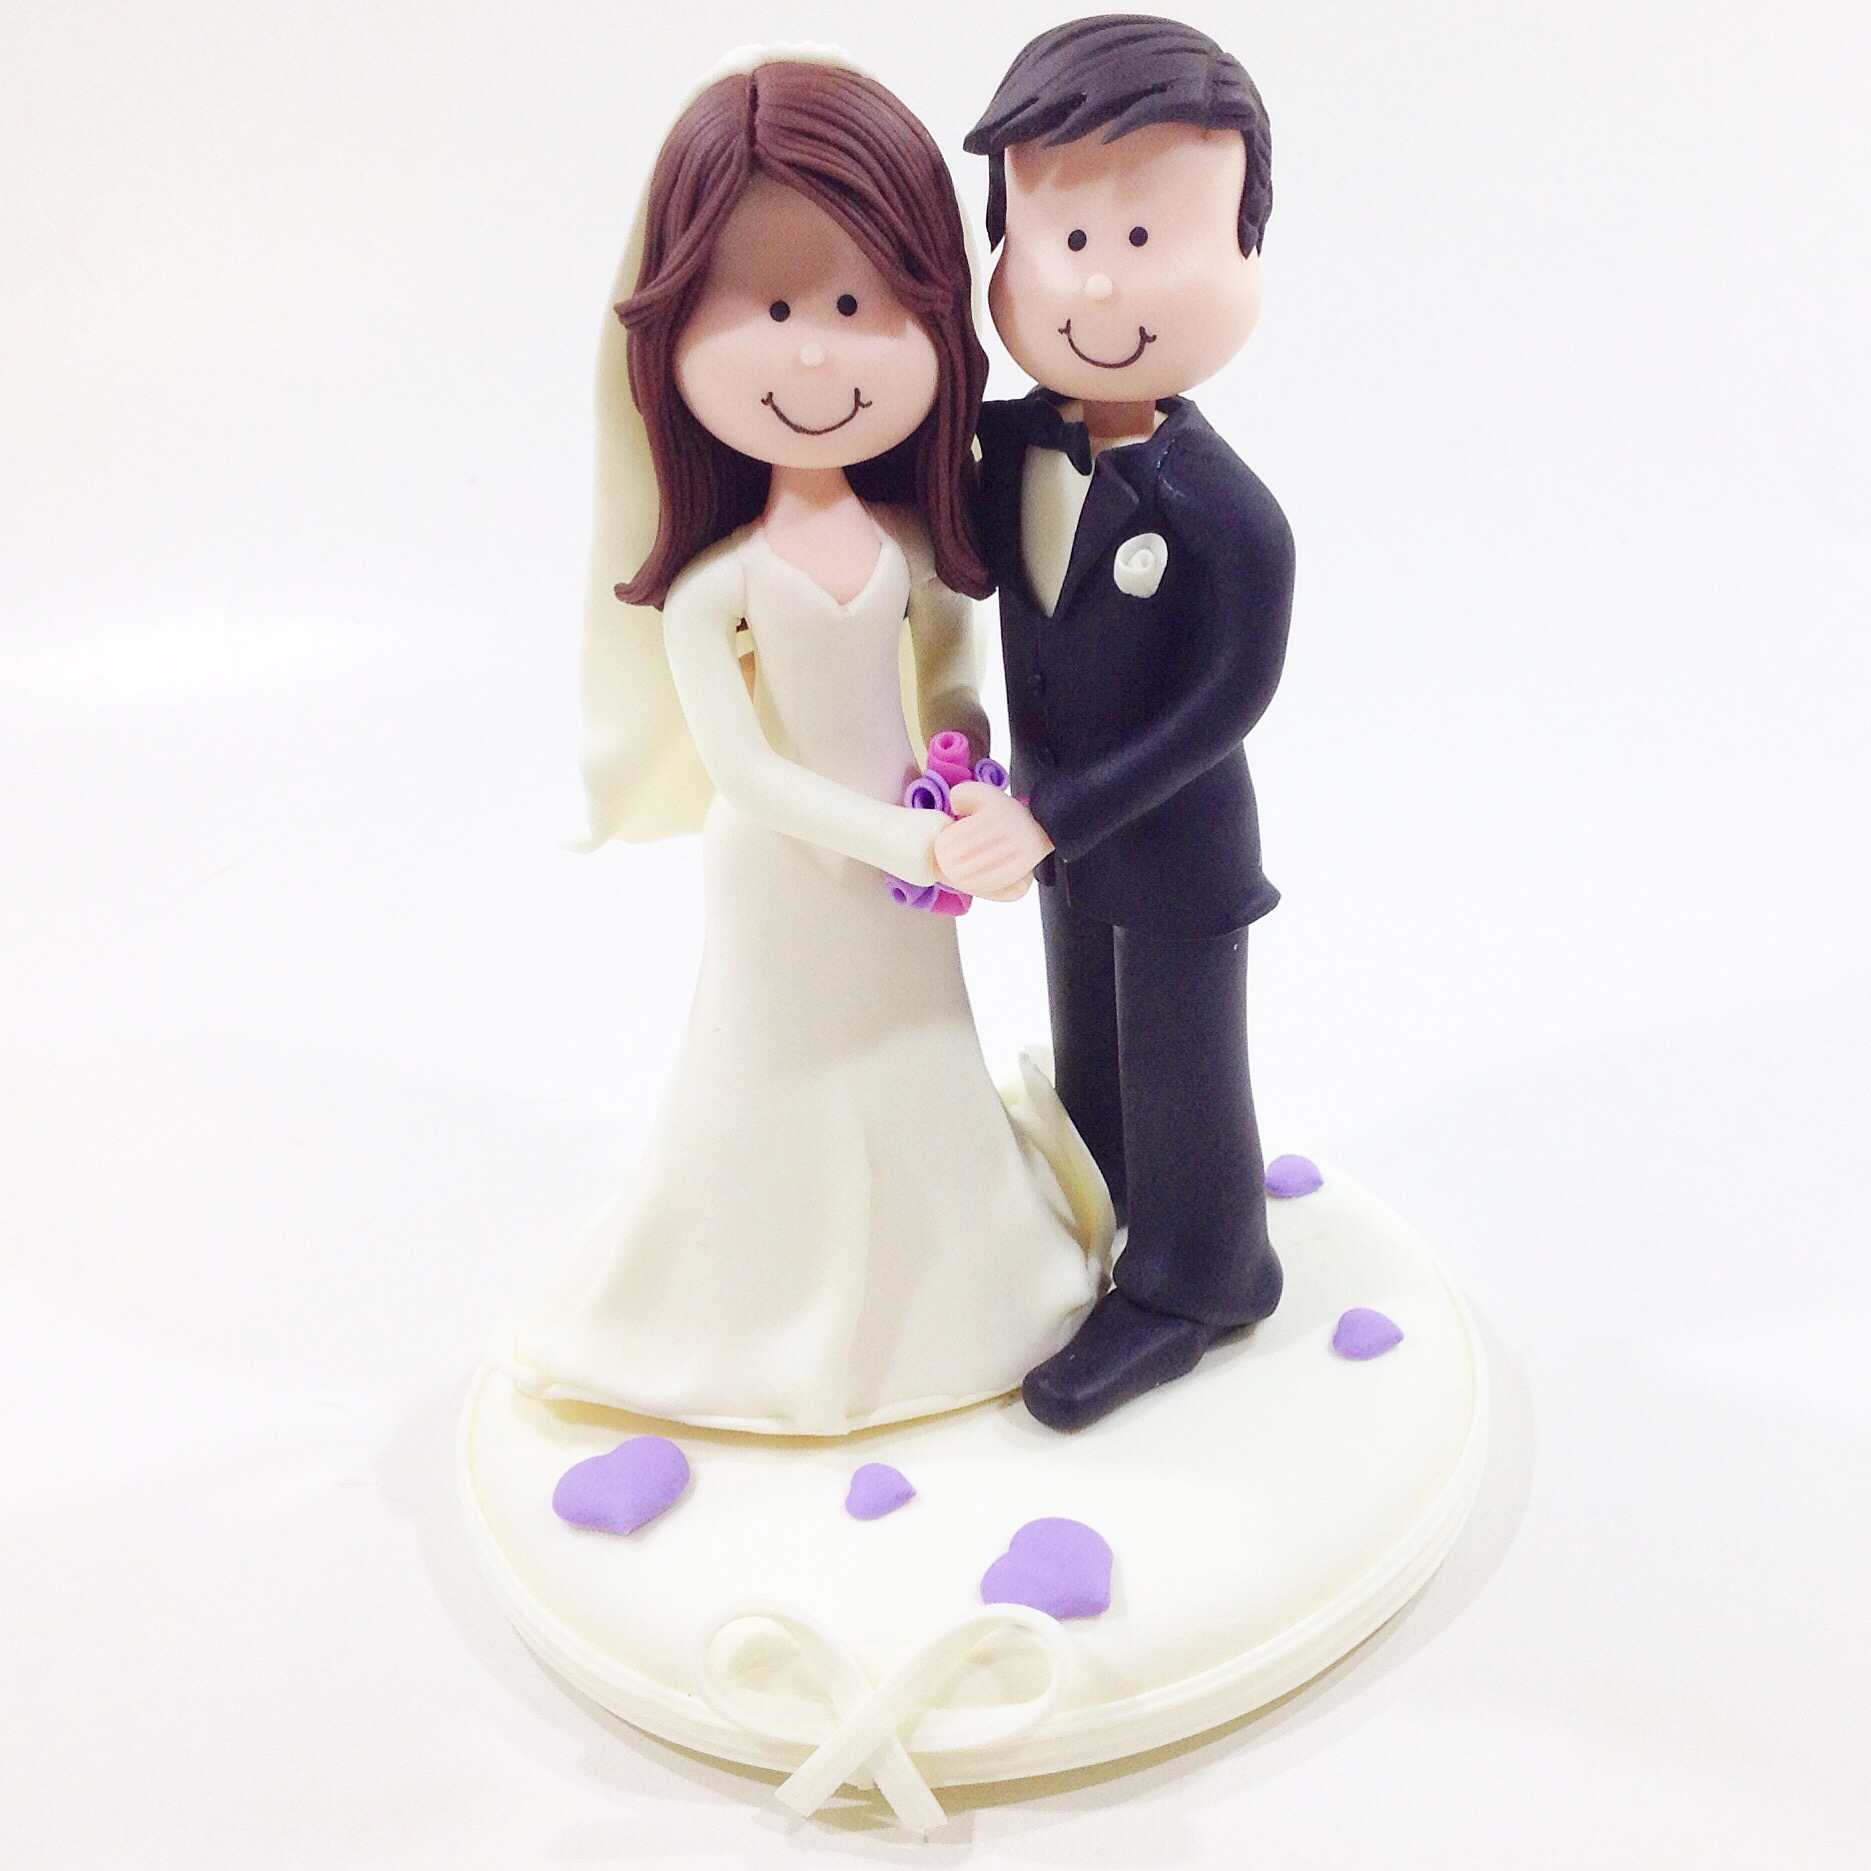 wedding_cake_topper_romantic_bride_groom.JPG